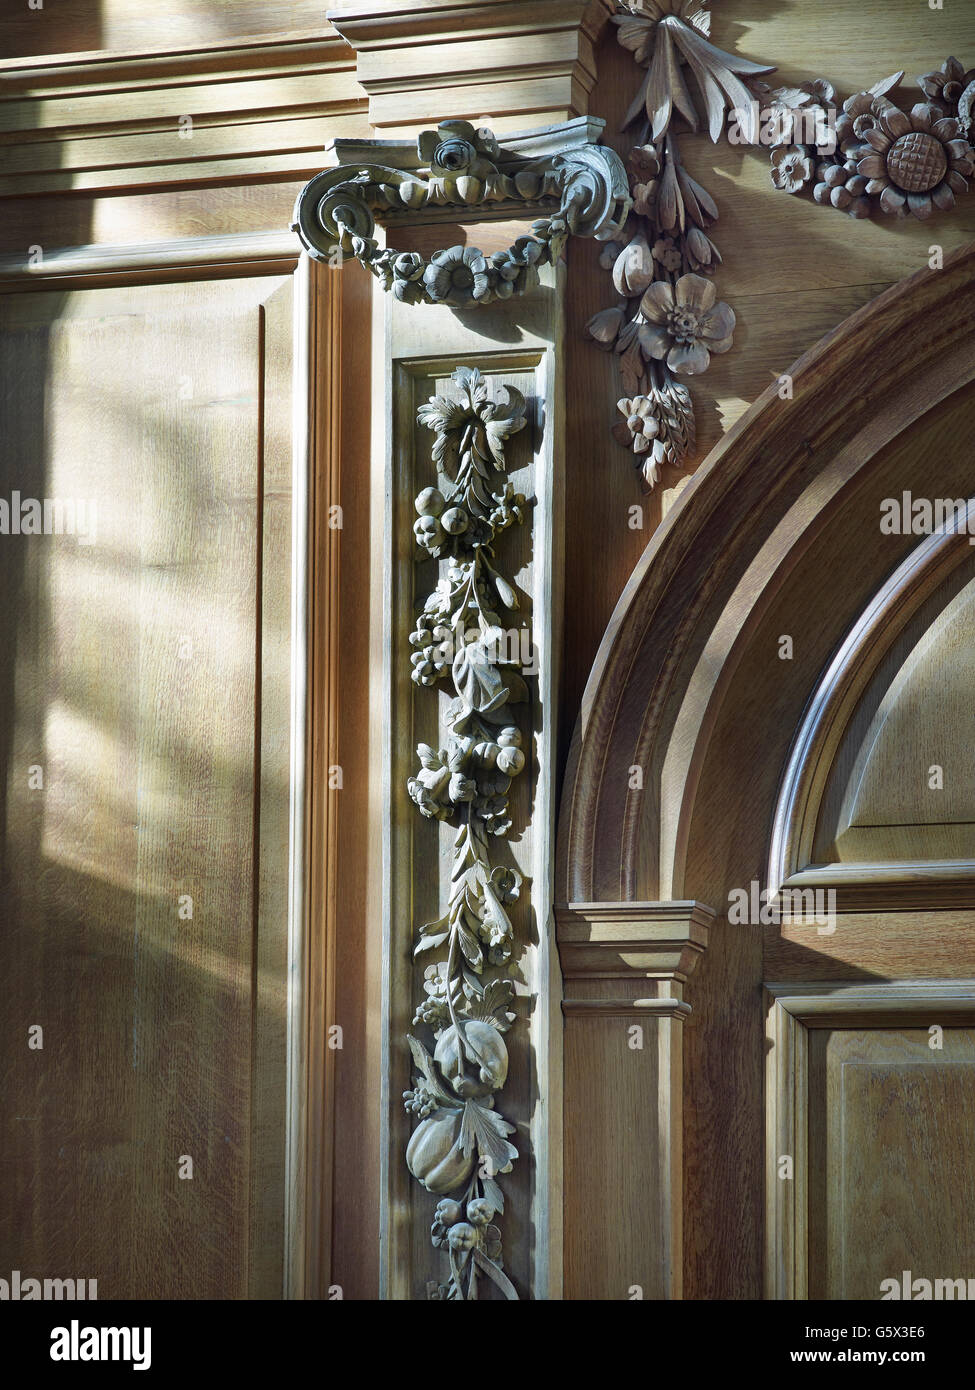 St Nicholas Cole Abbey, church in the City of London; Ionic pilaster on west screen. - Stock Image